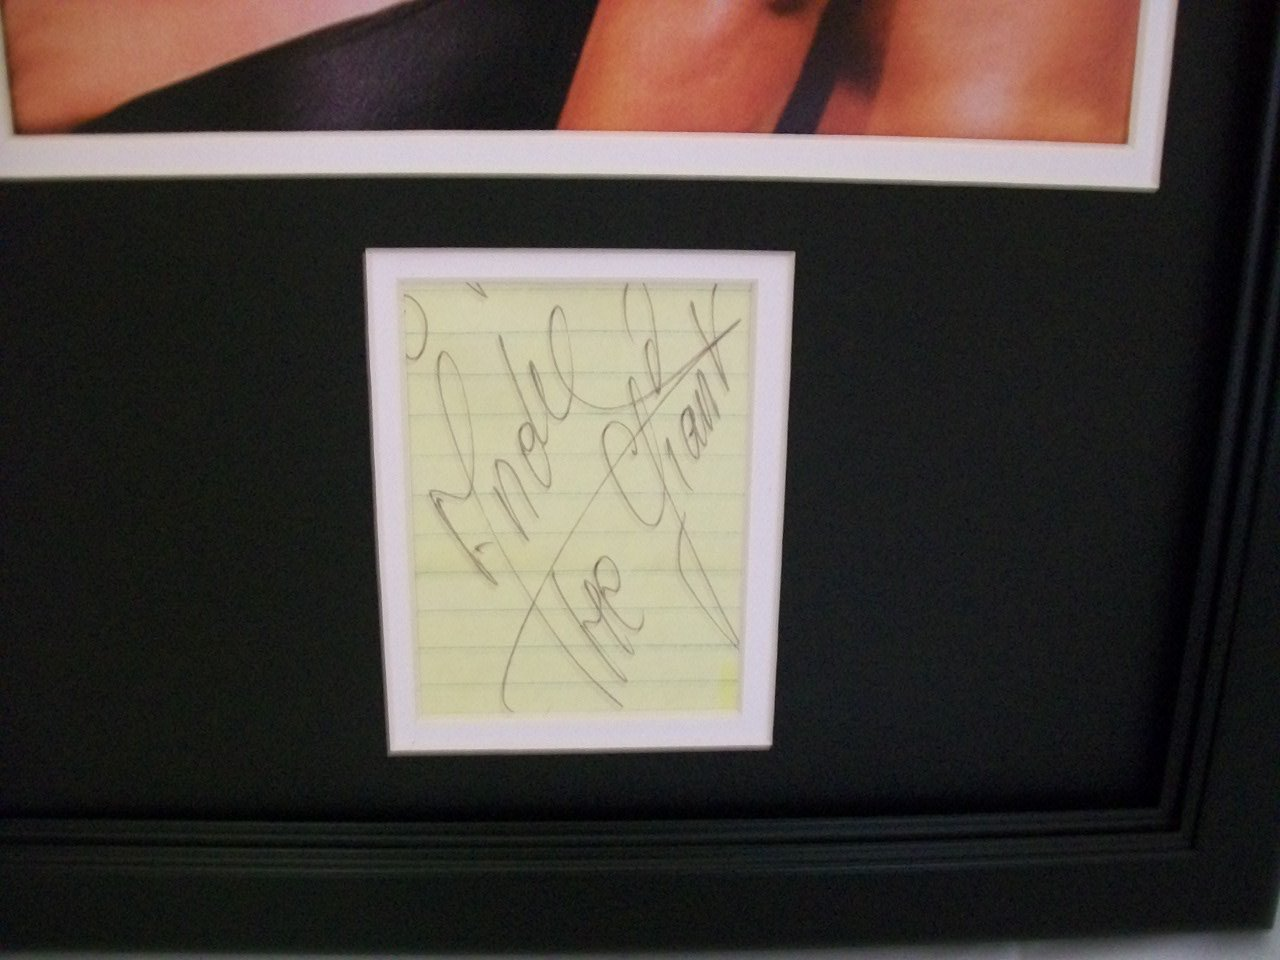 WWF Andre The Giant Autographed Reprint 8x10 Photo Vs. Hulk Hogan Framed Autographed Wrestling Photos